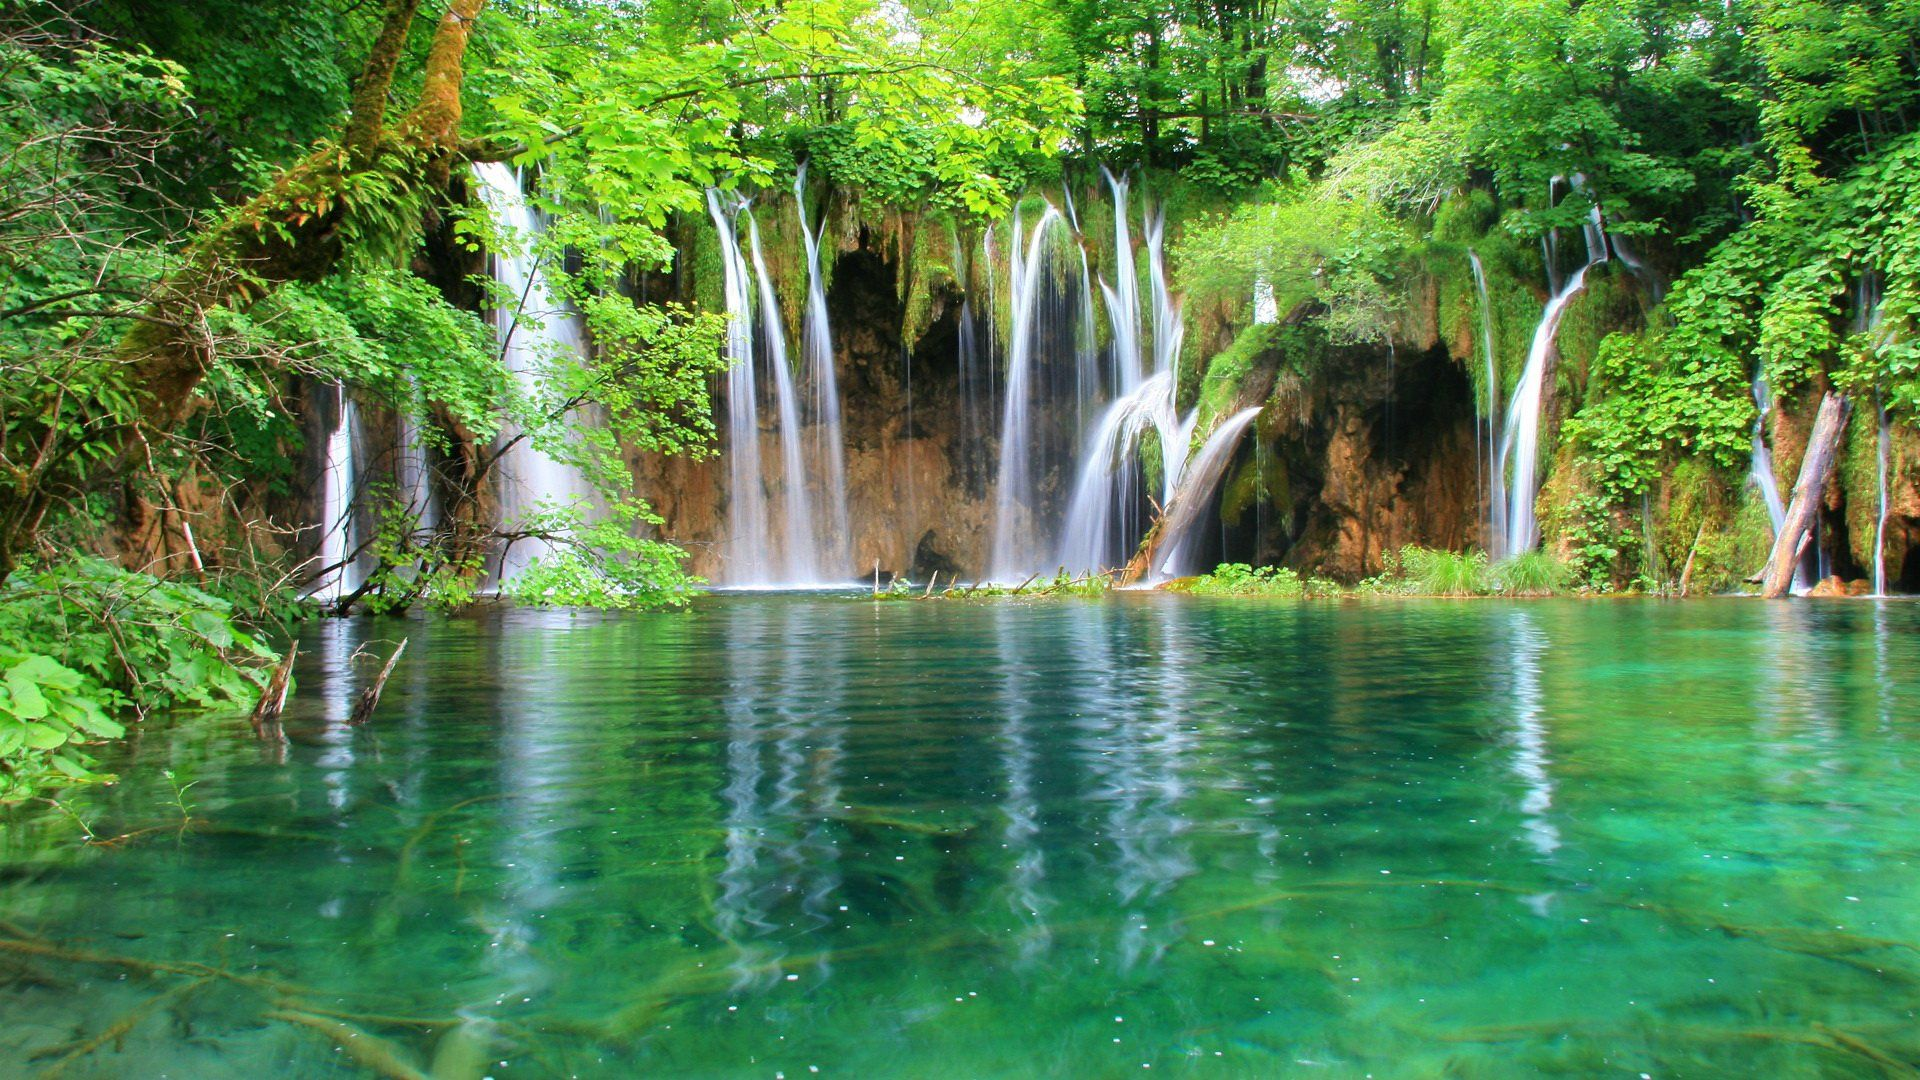 50 Nature Wallpapers Hd For Free Download Beautiful Vacation Spots Plitvice Lakes National Park Plitvice Lakes